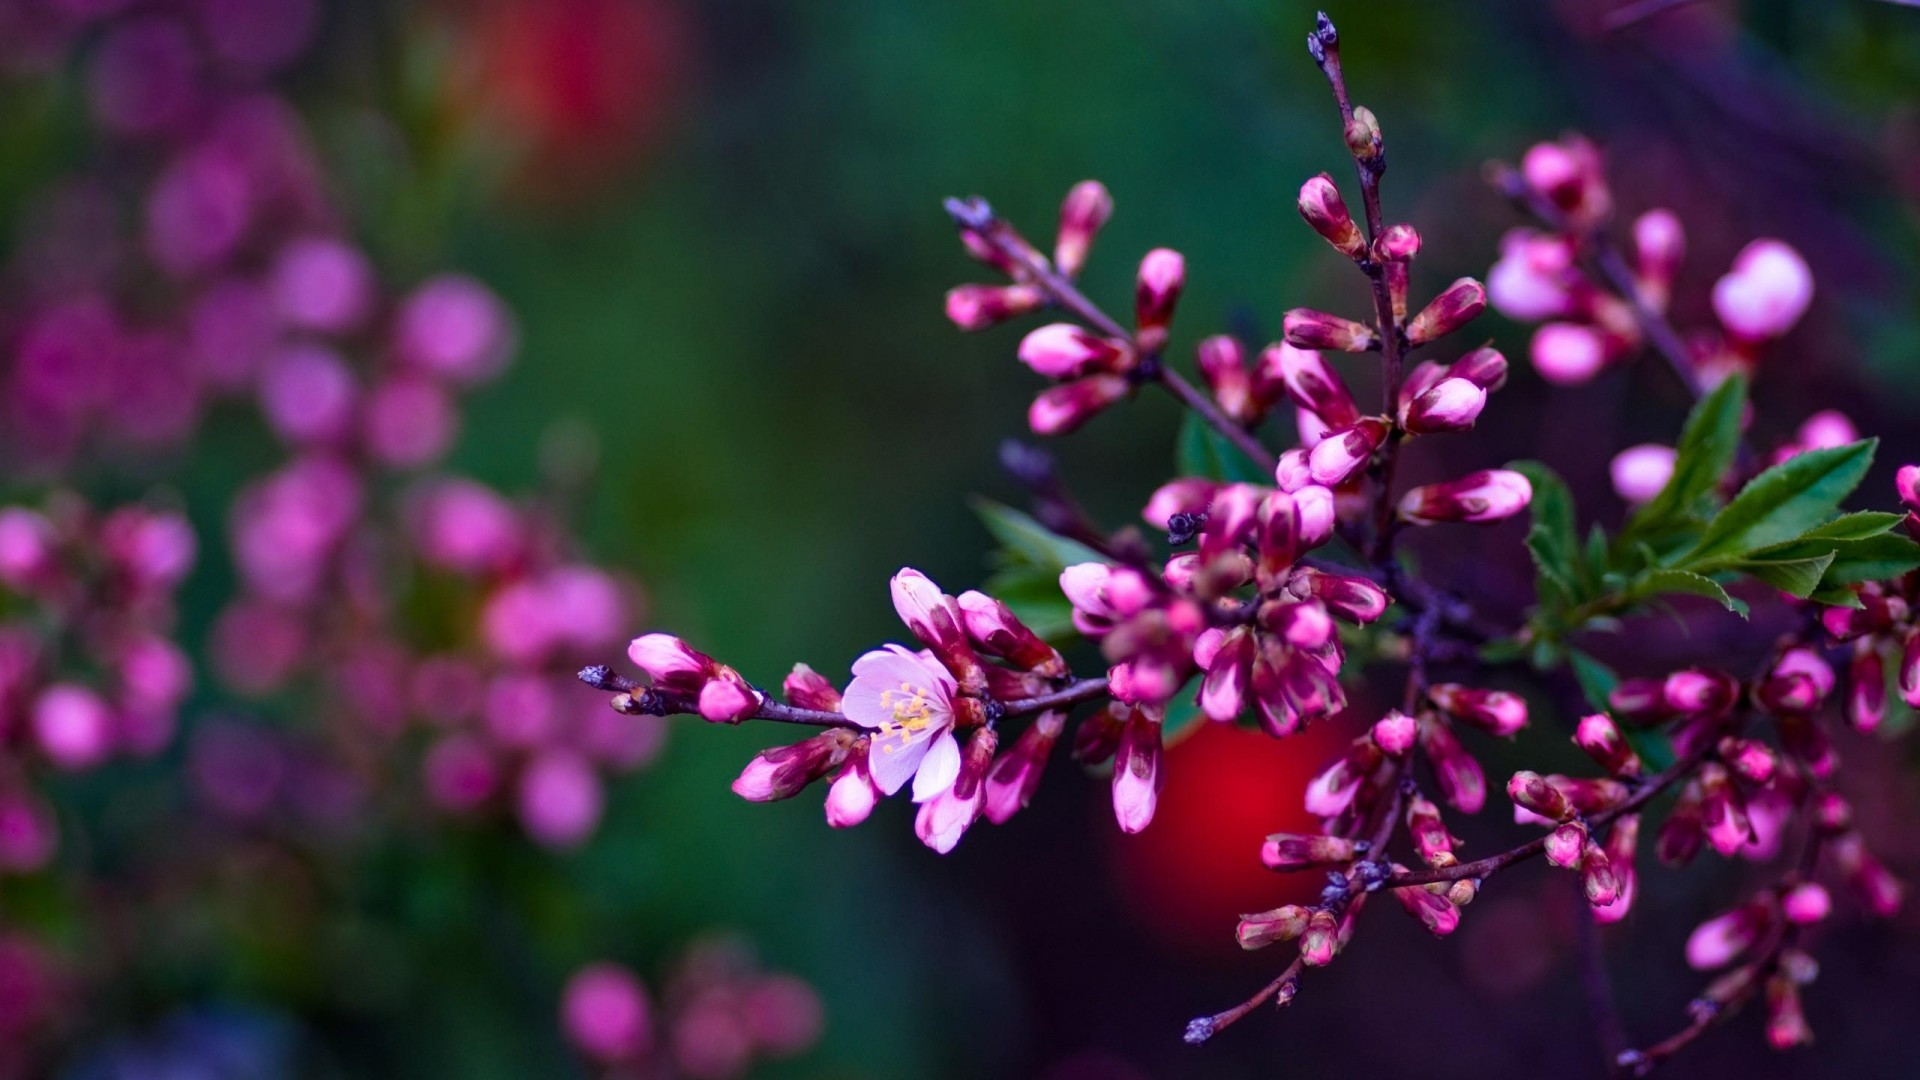 Spring Wallpaper and Screensavers HD 70 images 1920x1080